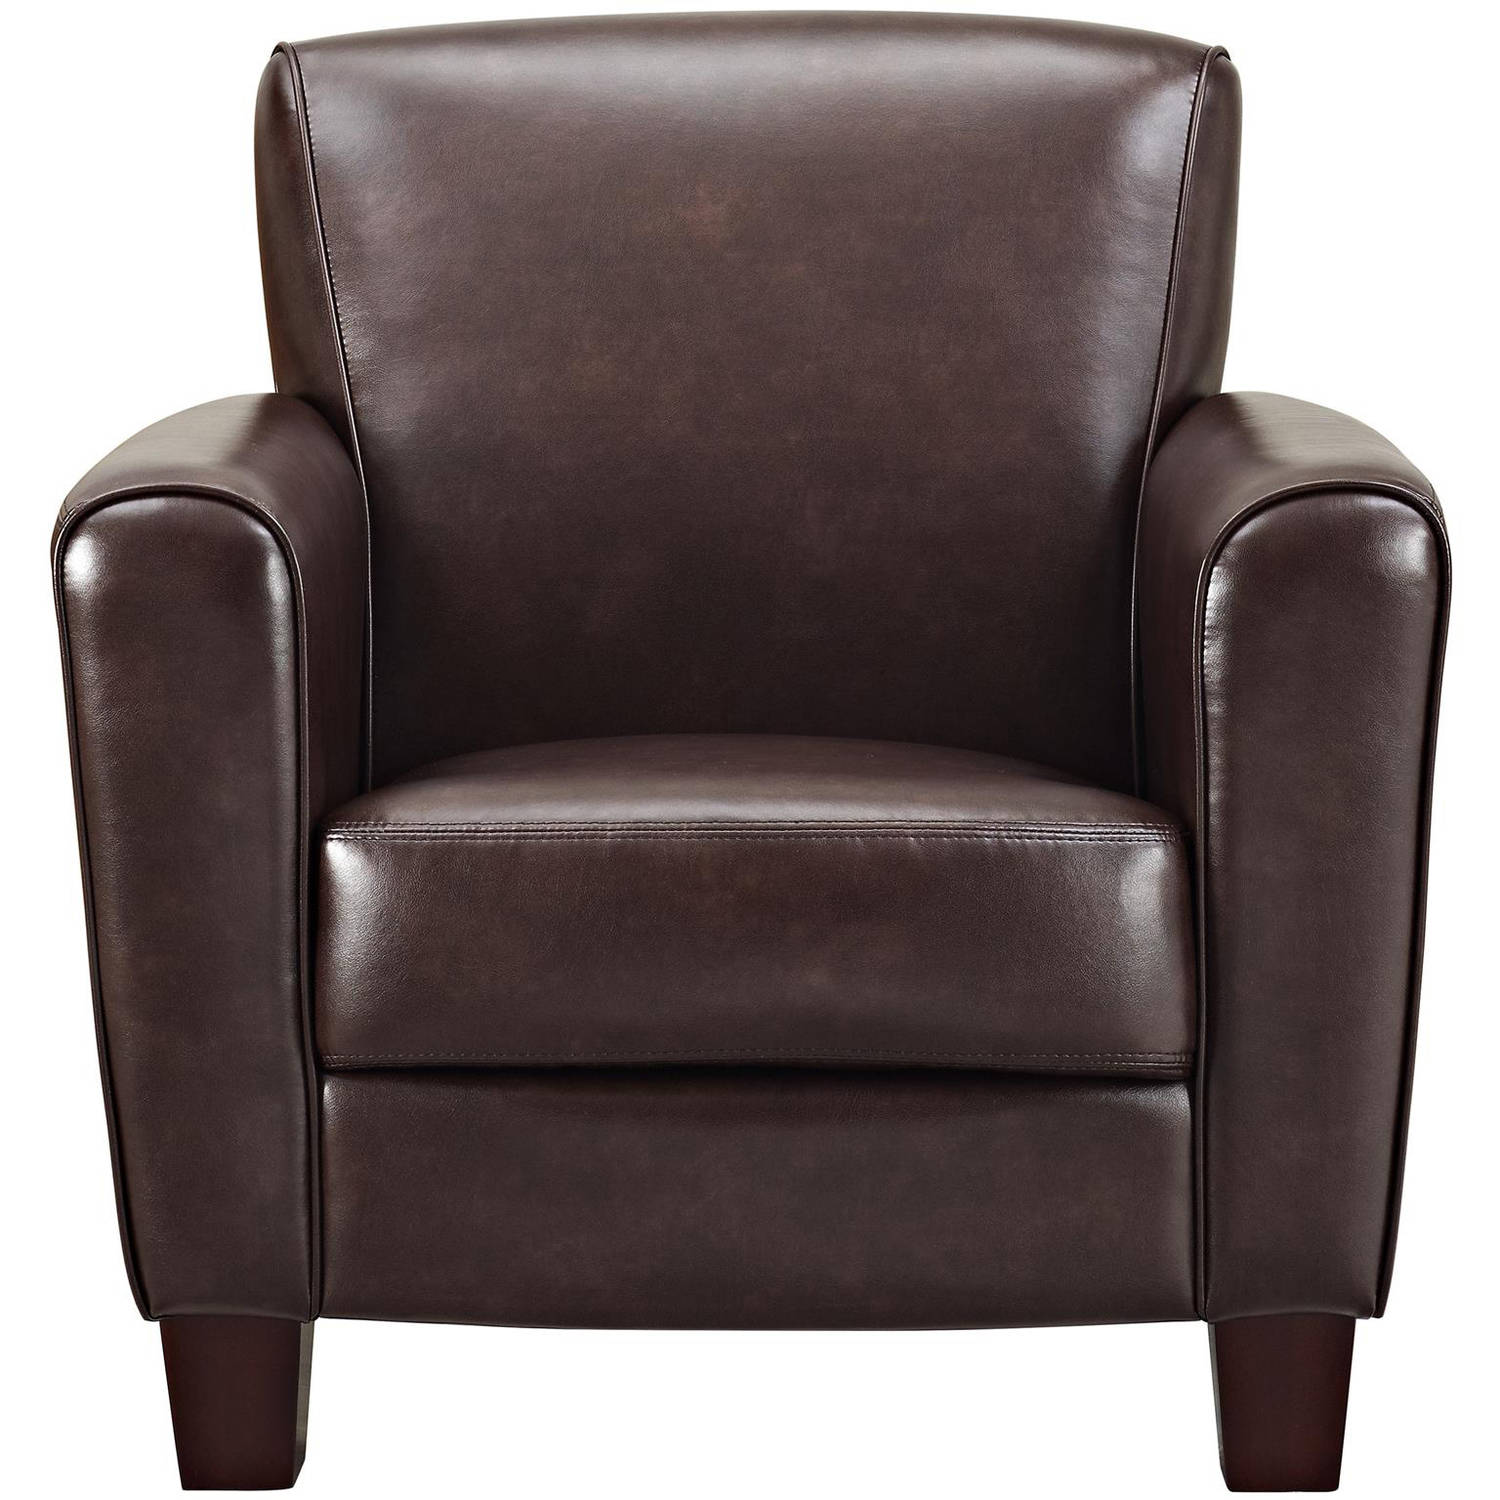 Club Chair Leather Club Chair Brown Leather Casual Contemporary Wide Arm